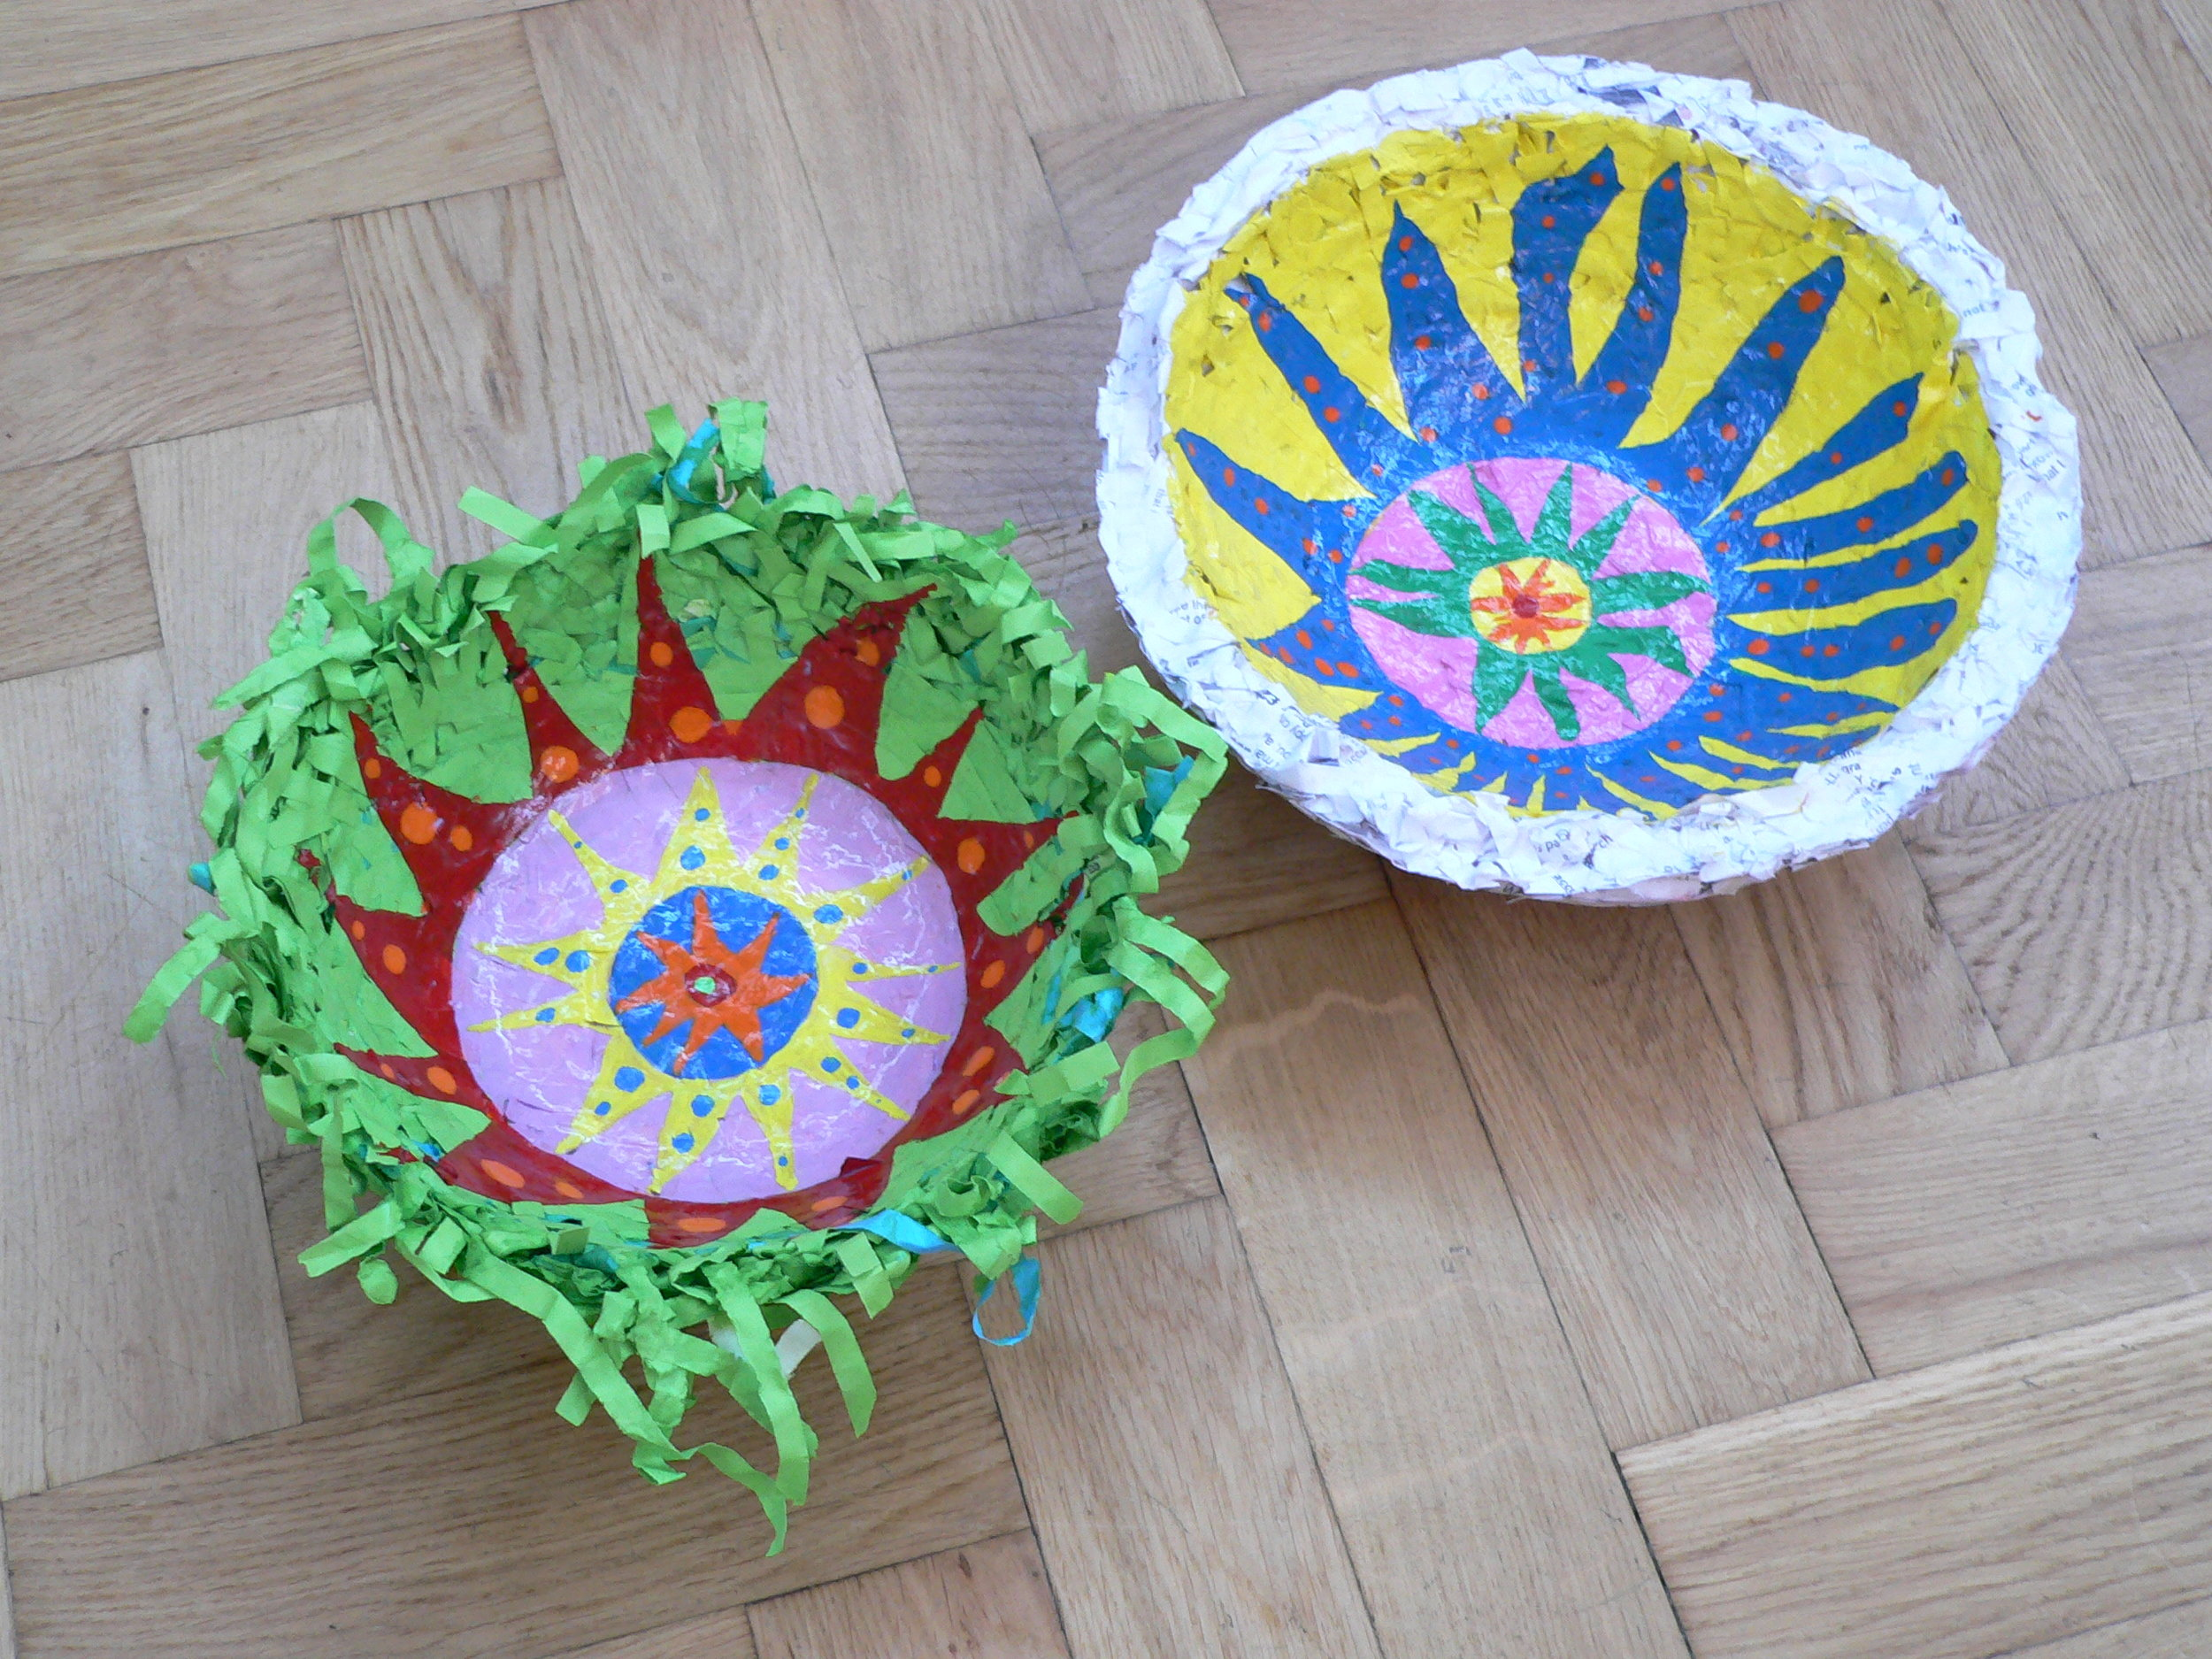 Debbie_shredded paper bowls November 2016.JPG